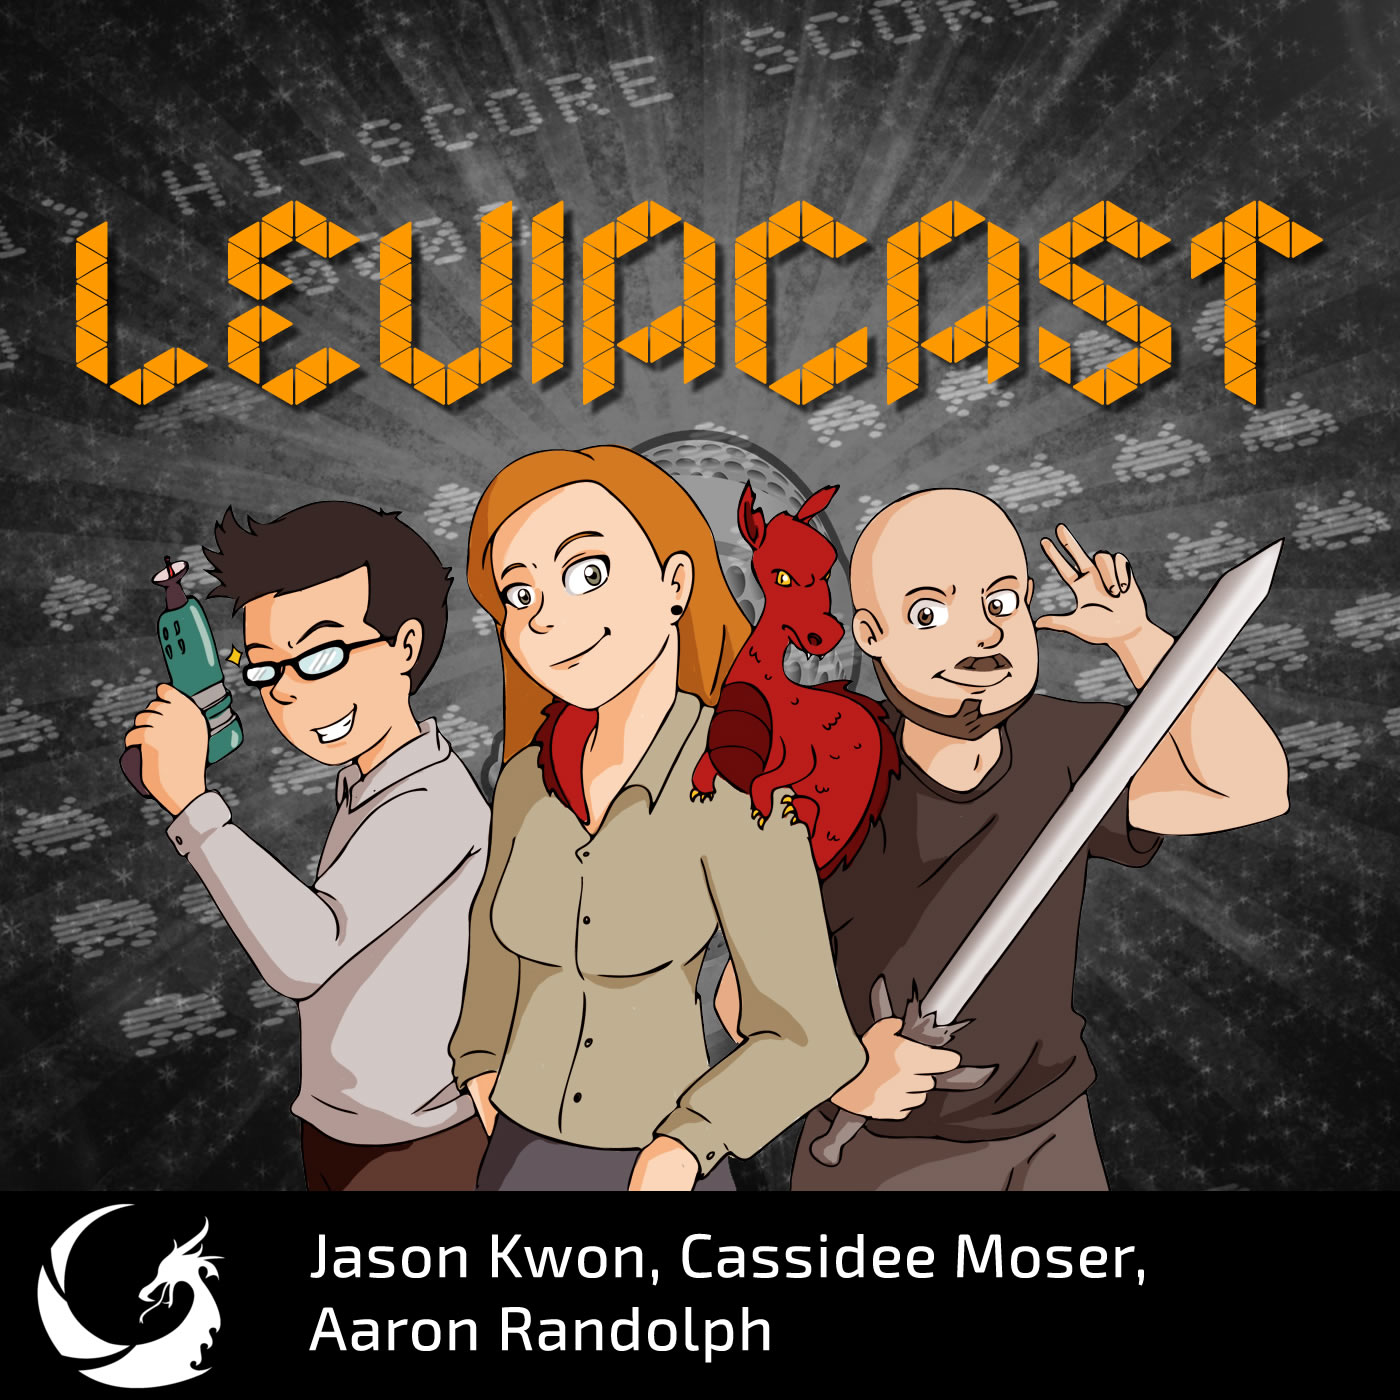 Leviacast Ep. 76: The Most Annoying Game Characters (feat. Eden Rohatensky)